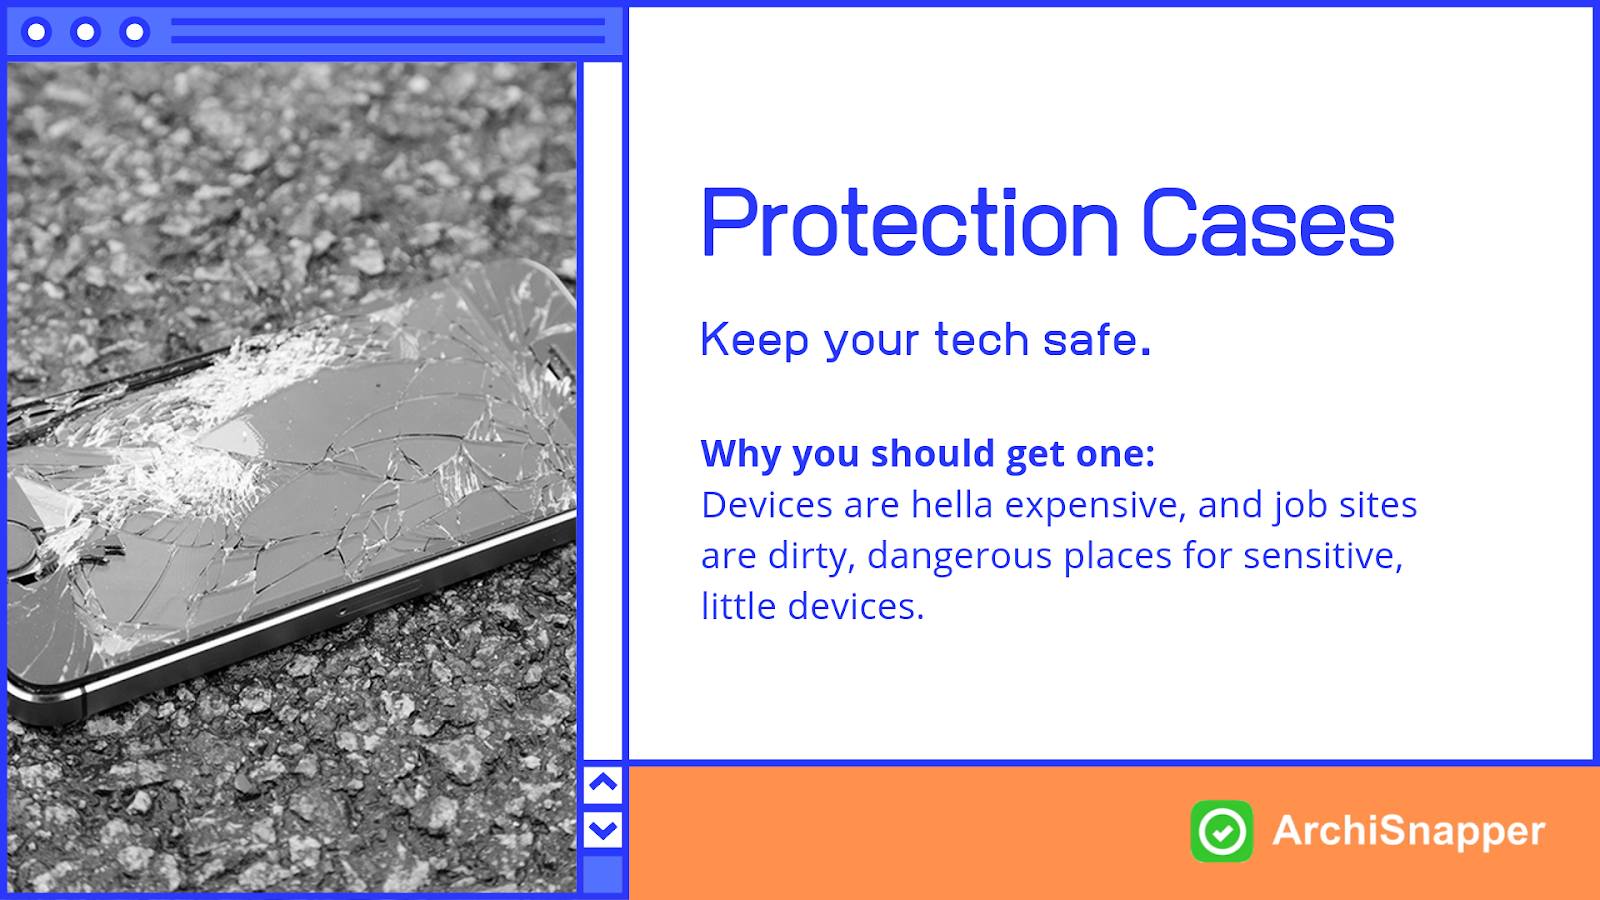 Protection Cases | List of the 15 must-have tech tools and accessories ideal for architects presented by Archisnapper